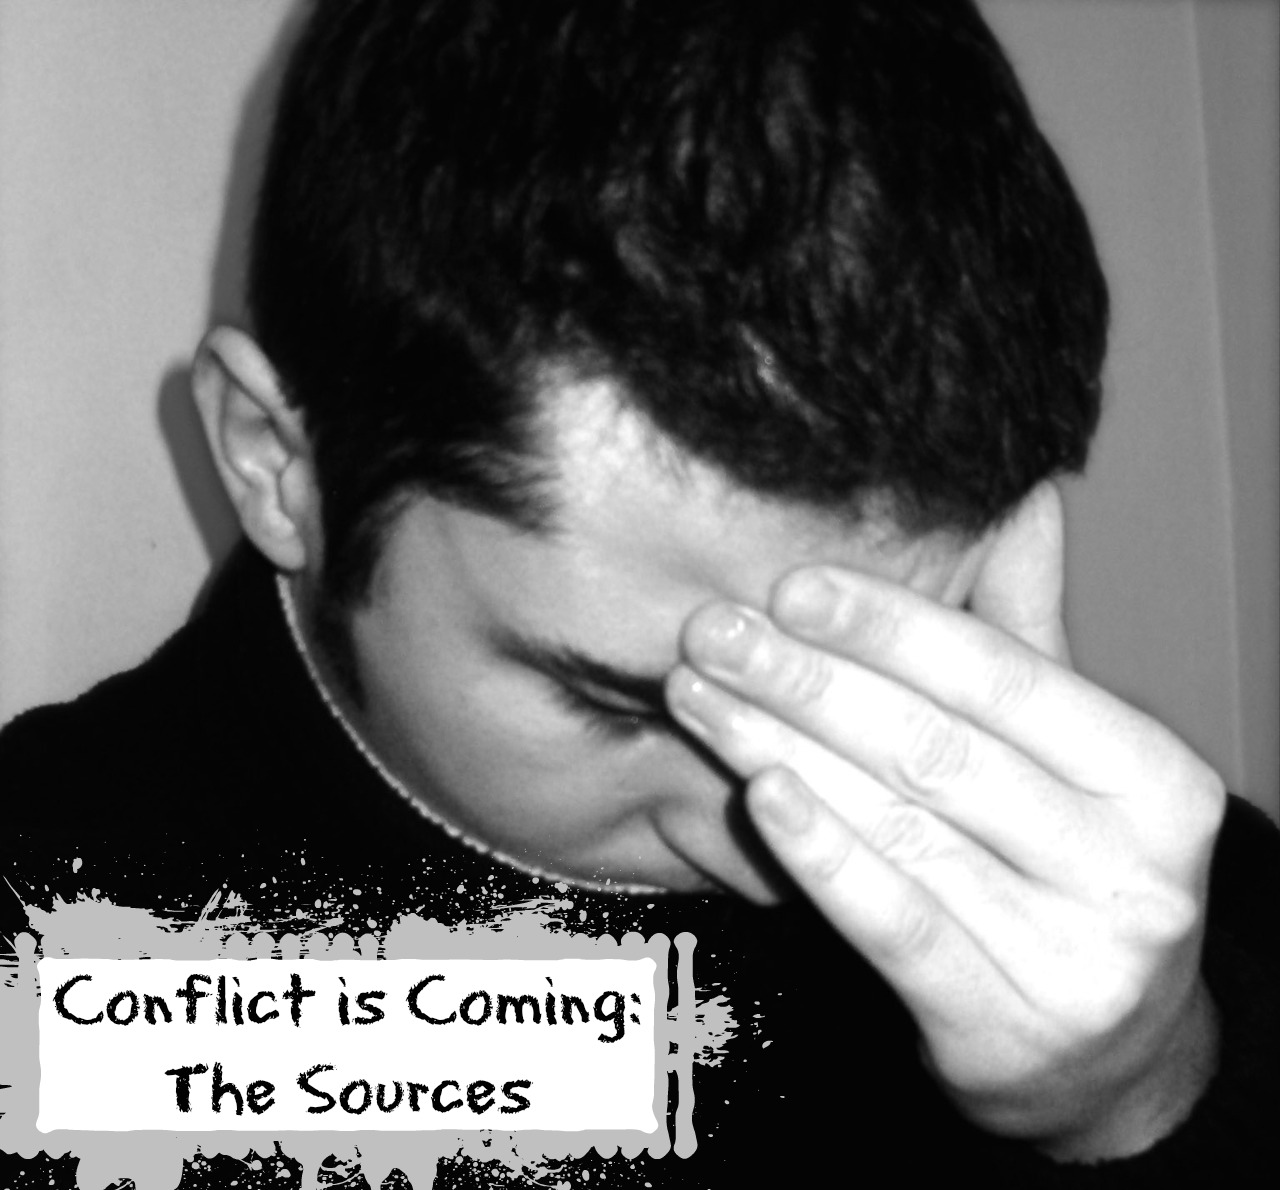 Conflict is Coming The Sources